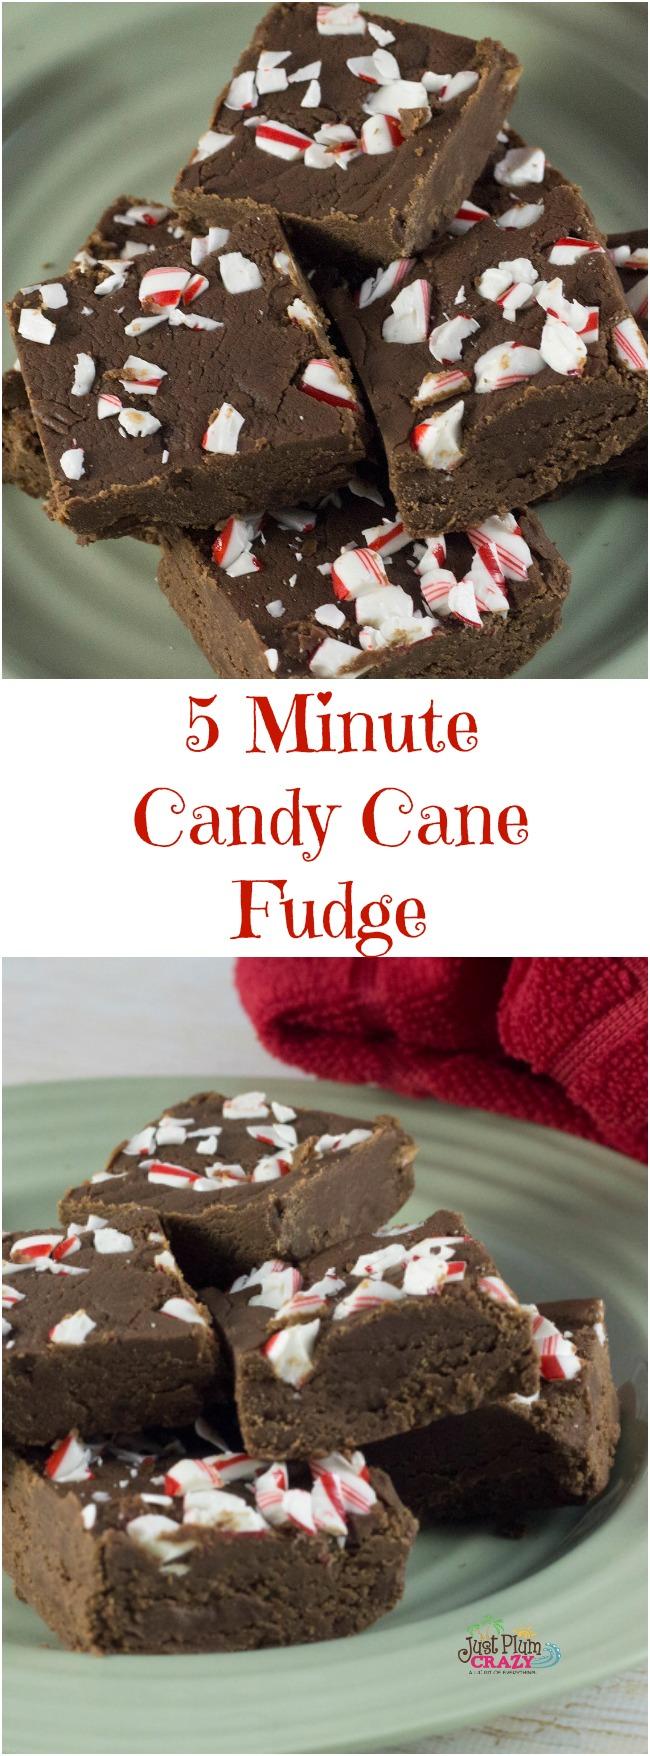 Why not make some quick & easy 5 Minute Candy Cane Fudge Recipe with your leftover candy canes for your New Year's Eve gathering.